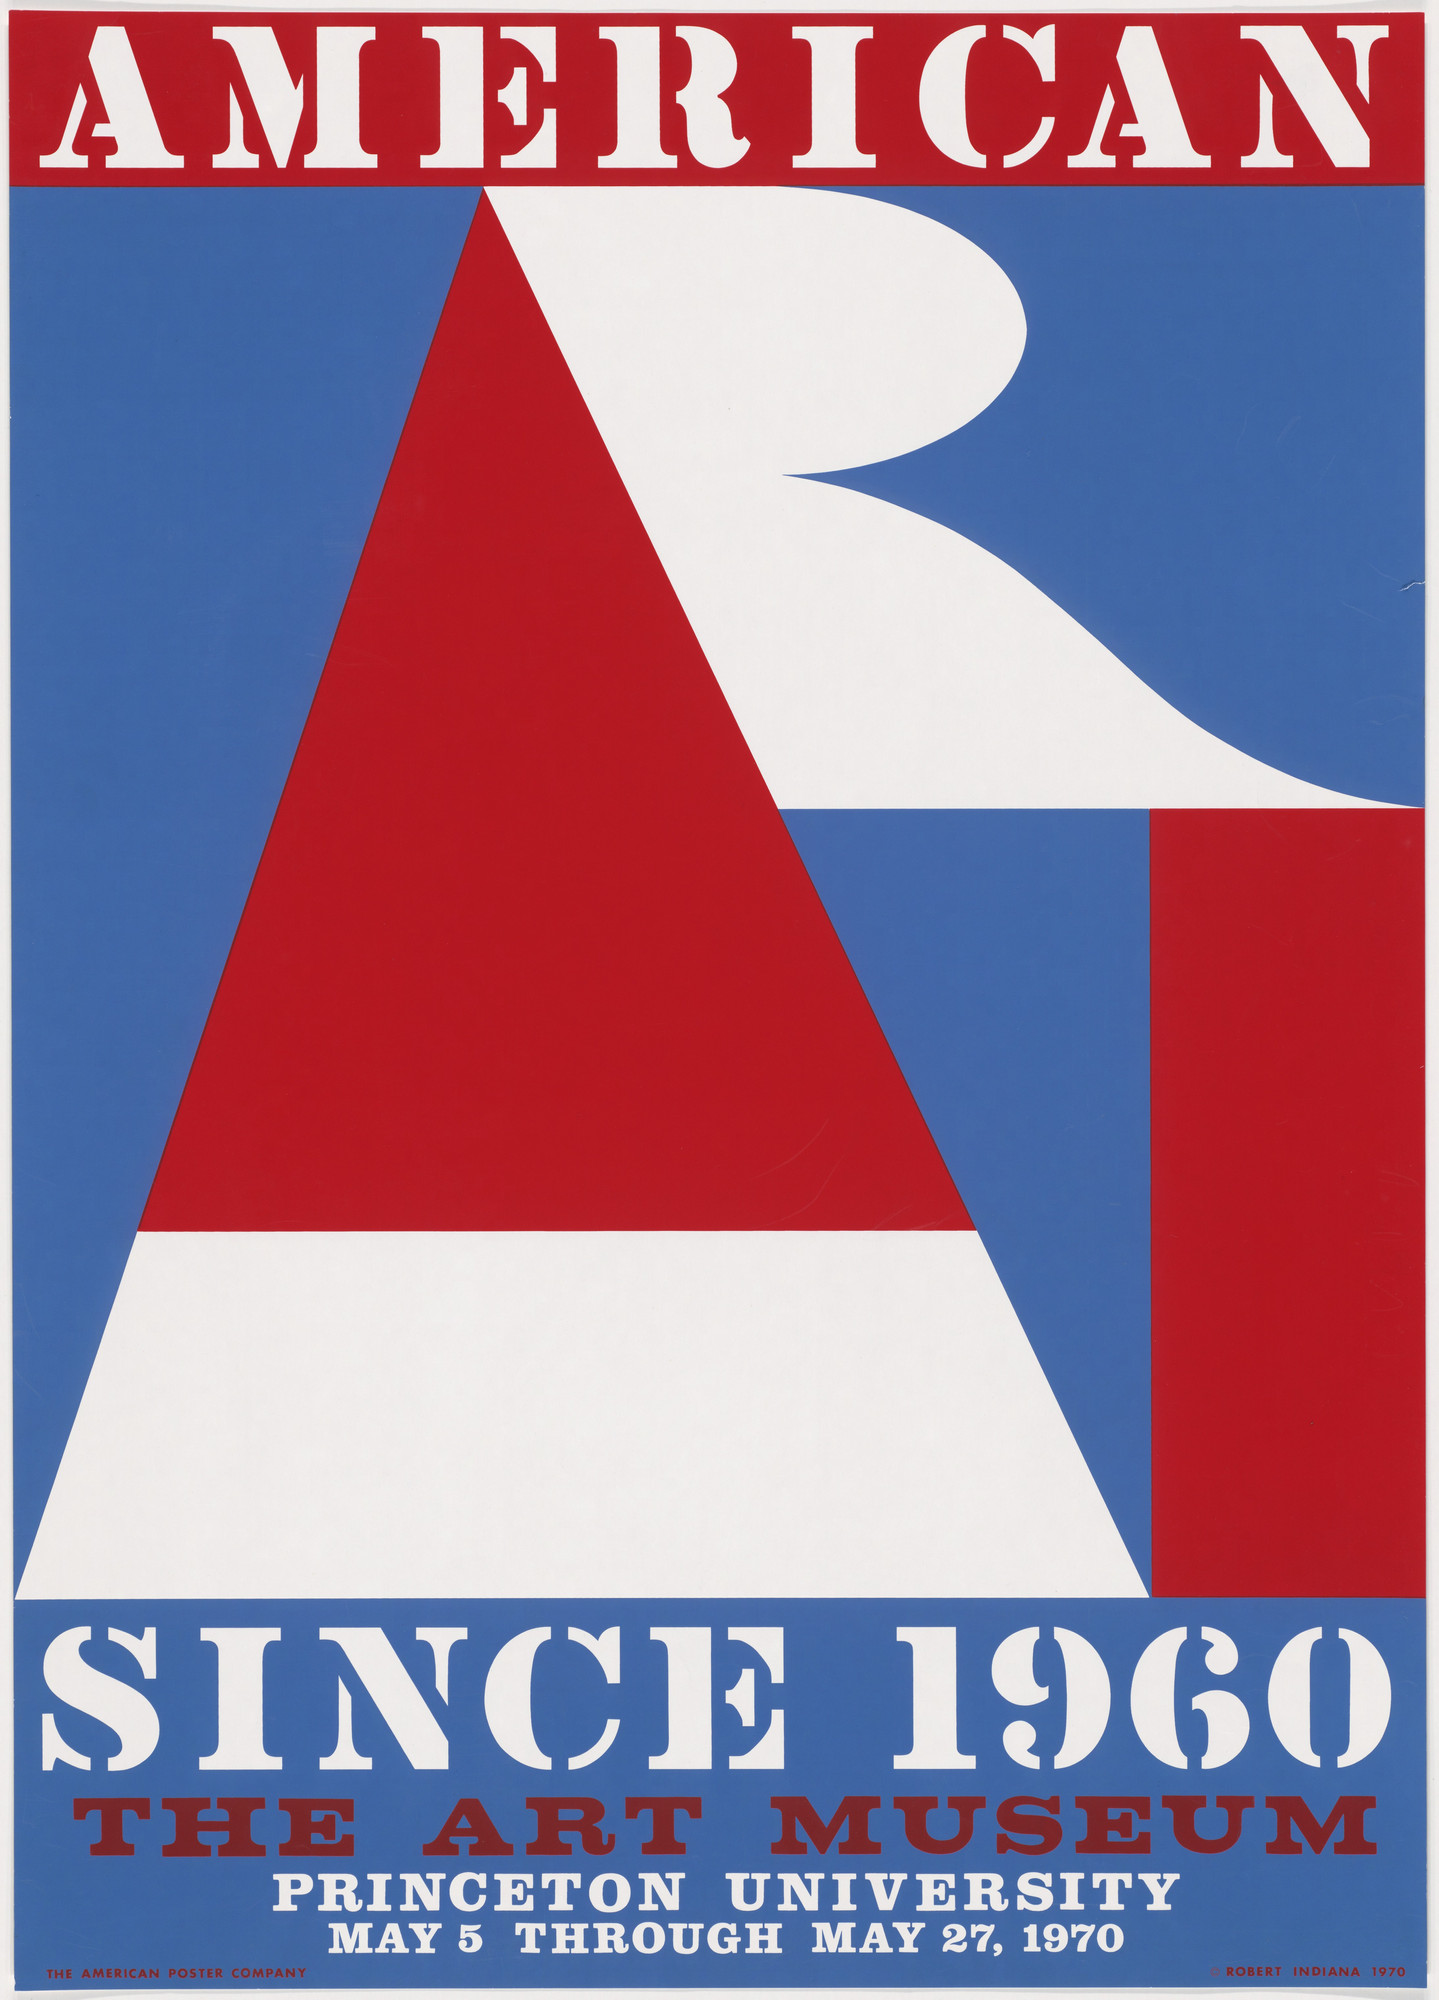 Robert Indiana. American Art Since 1960, The Art Museum, Princeton University, May 5 through May 27, 1970. 1970